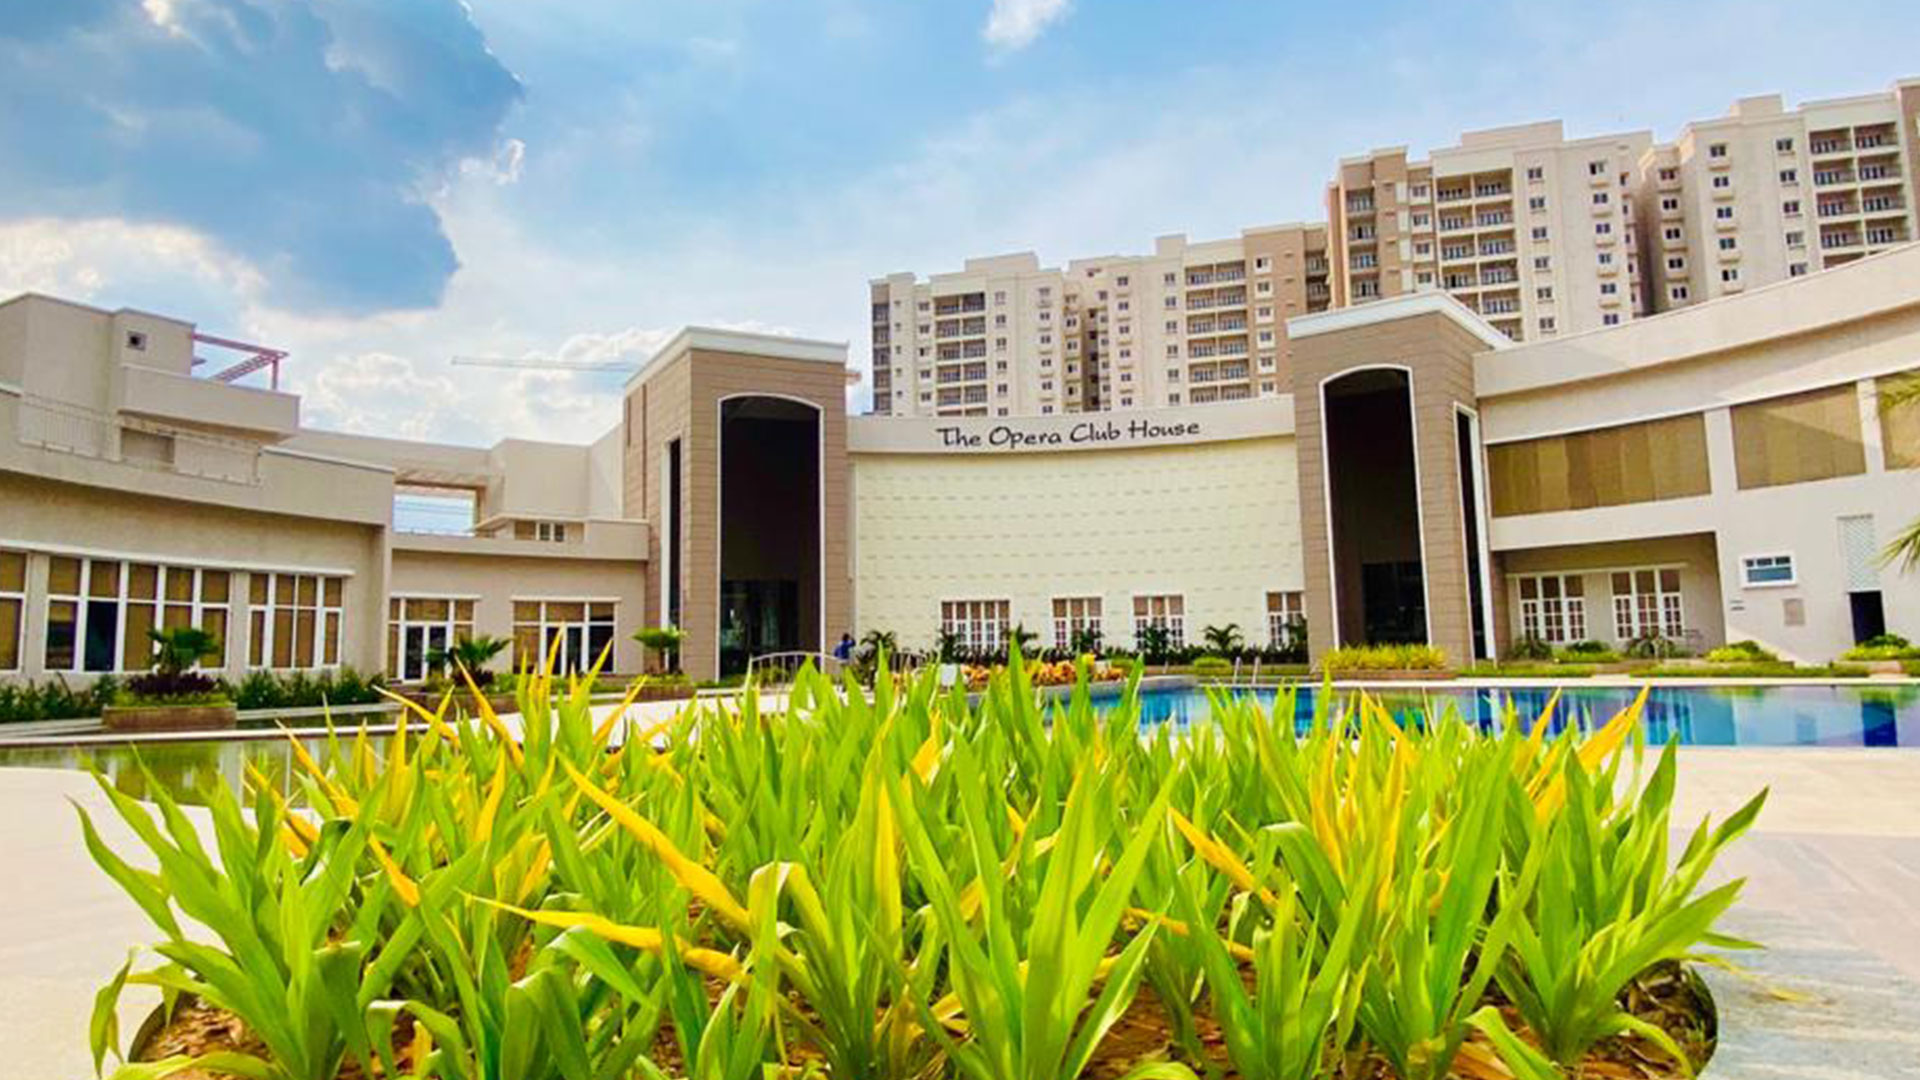 prestige-song-of-the-south-Apartment-in-yelenahalli-Bangalore-Image-02